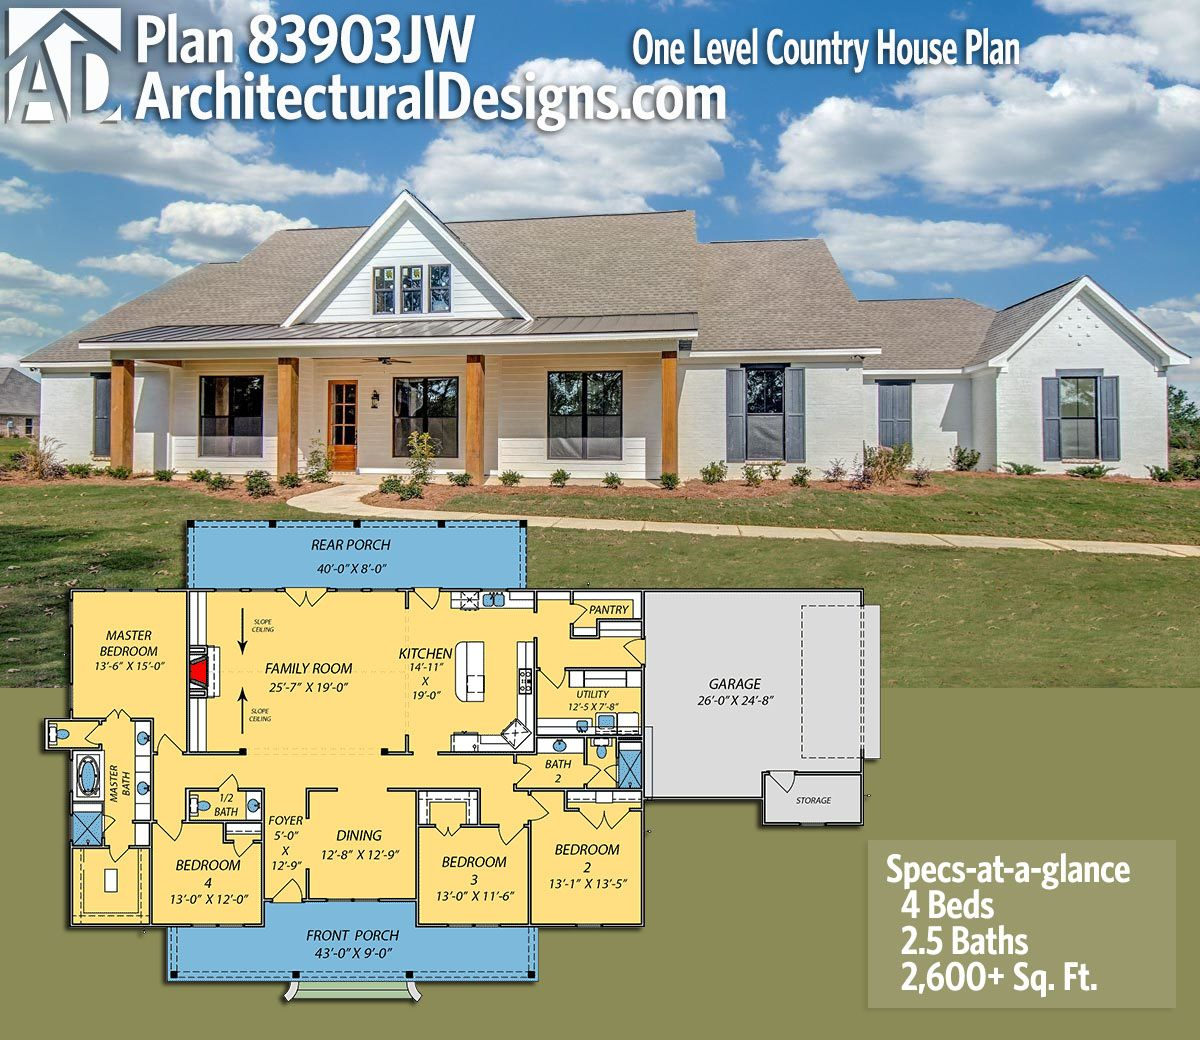 Architectural Designs House Plan 83903JW gives you one ...